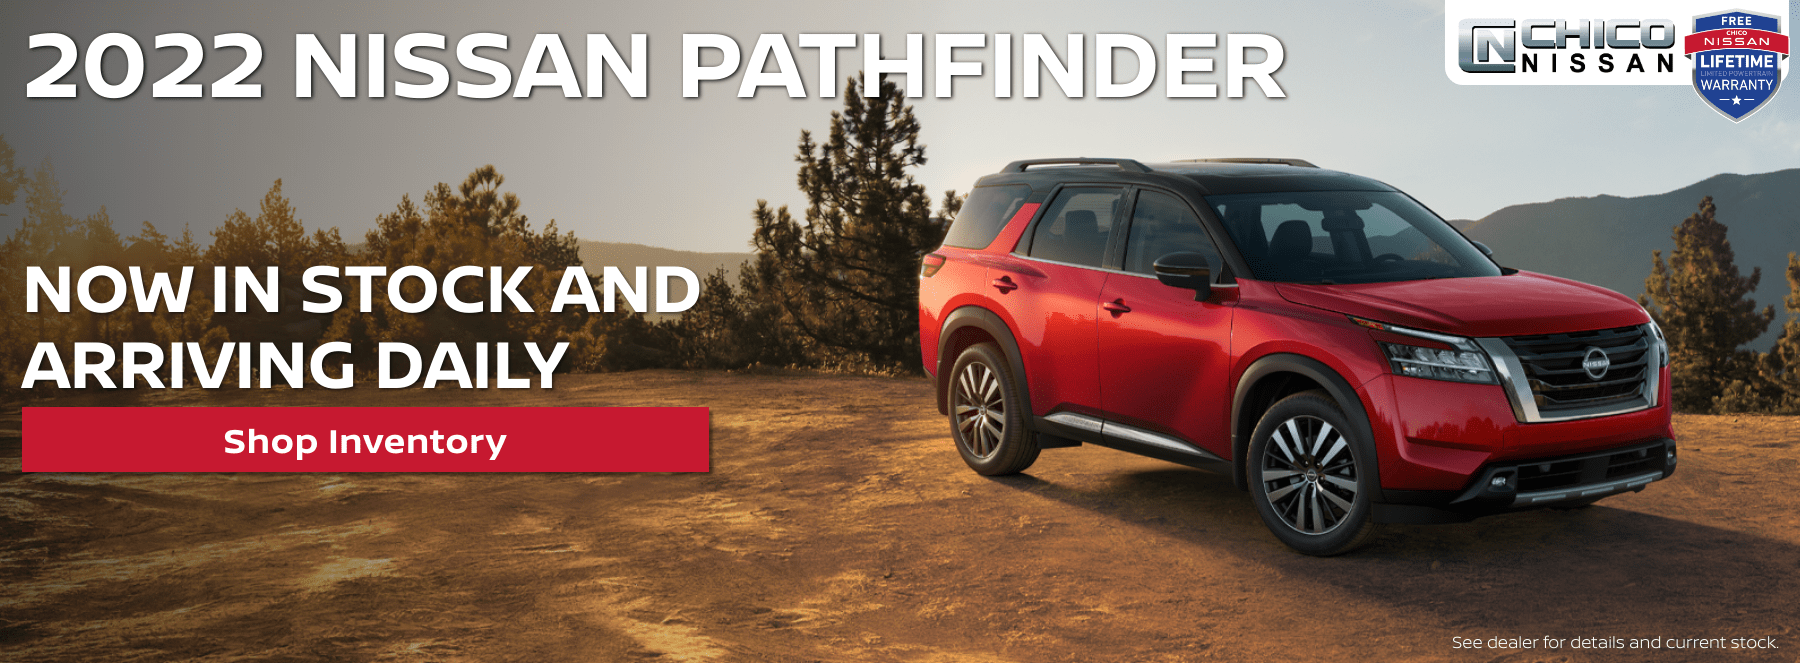 New Pathfinder In Stock-1800x663px